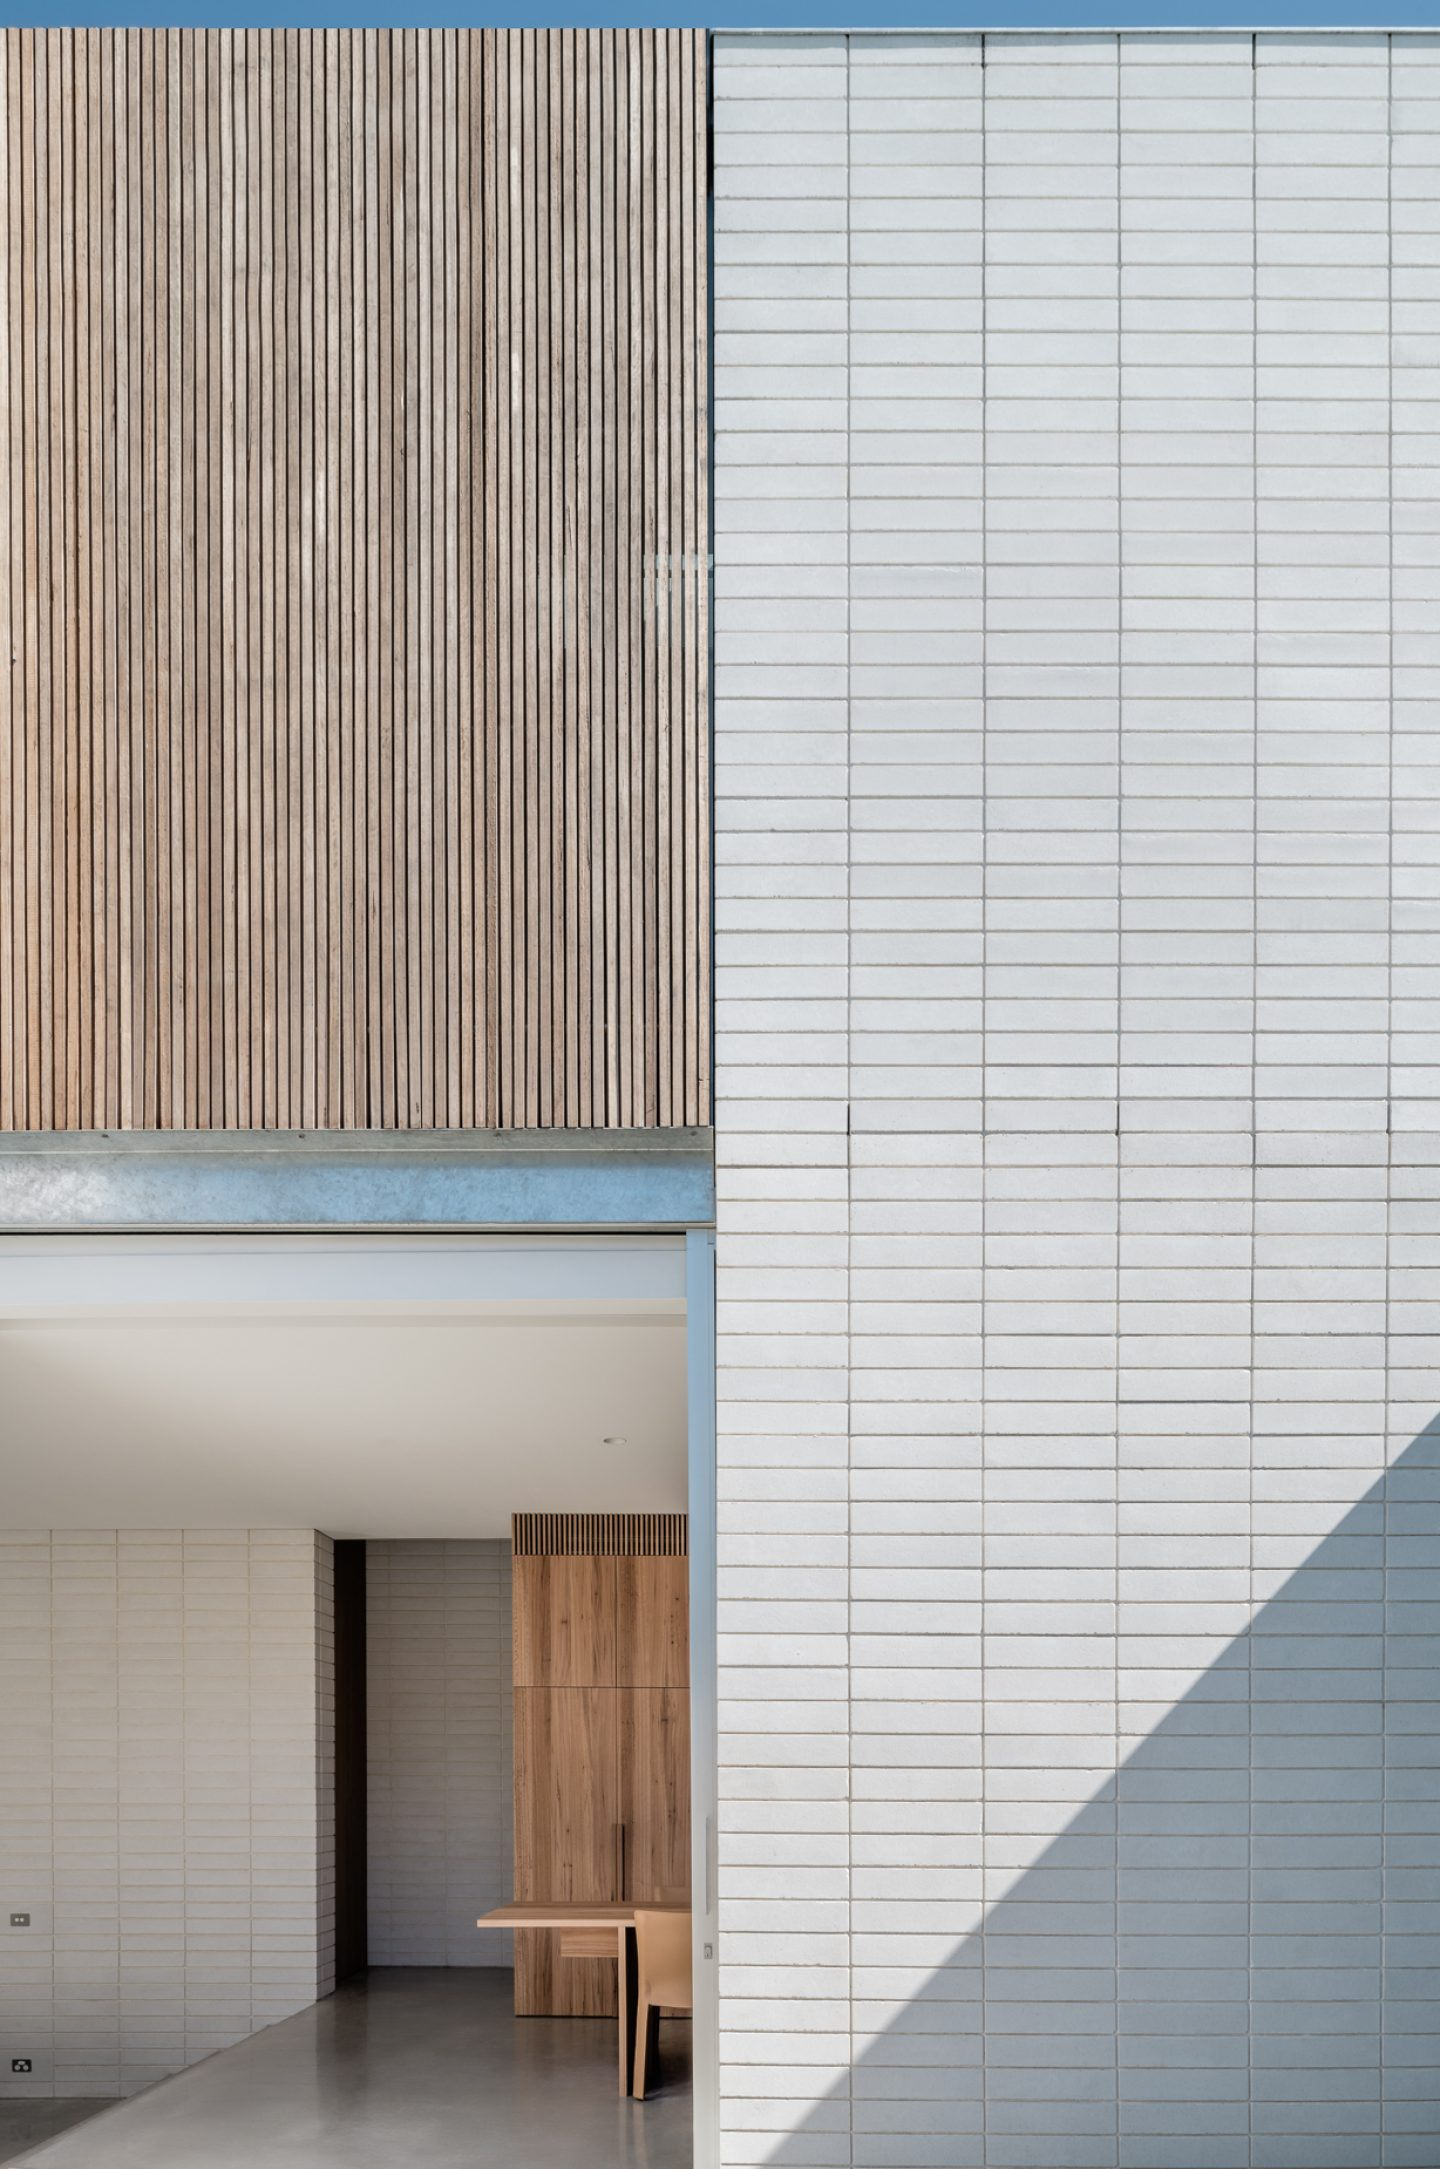 IGNANT-Architecture-Ritz-Ghougassian-Edsall-Street-02